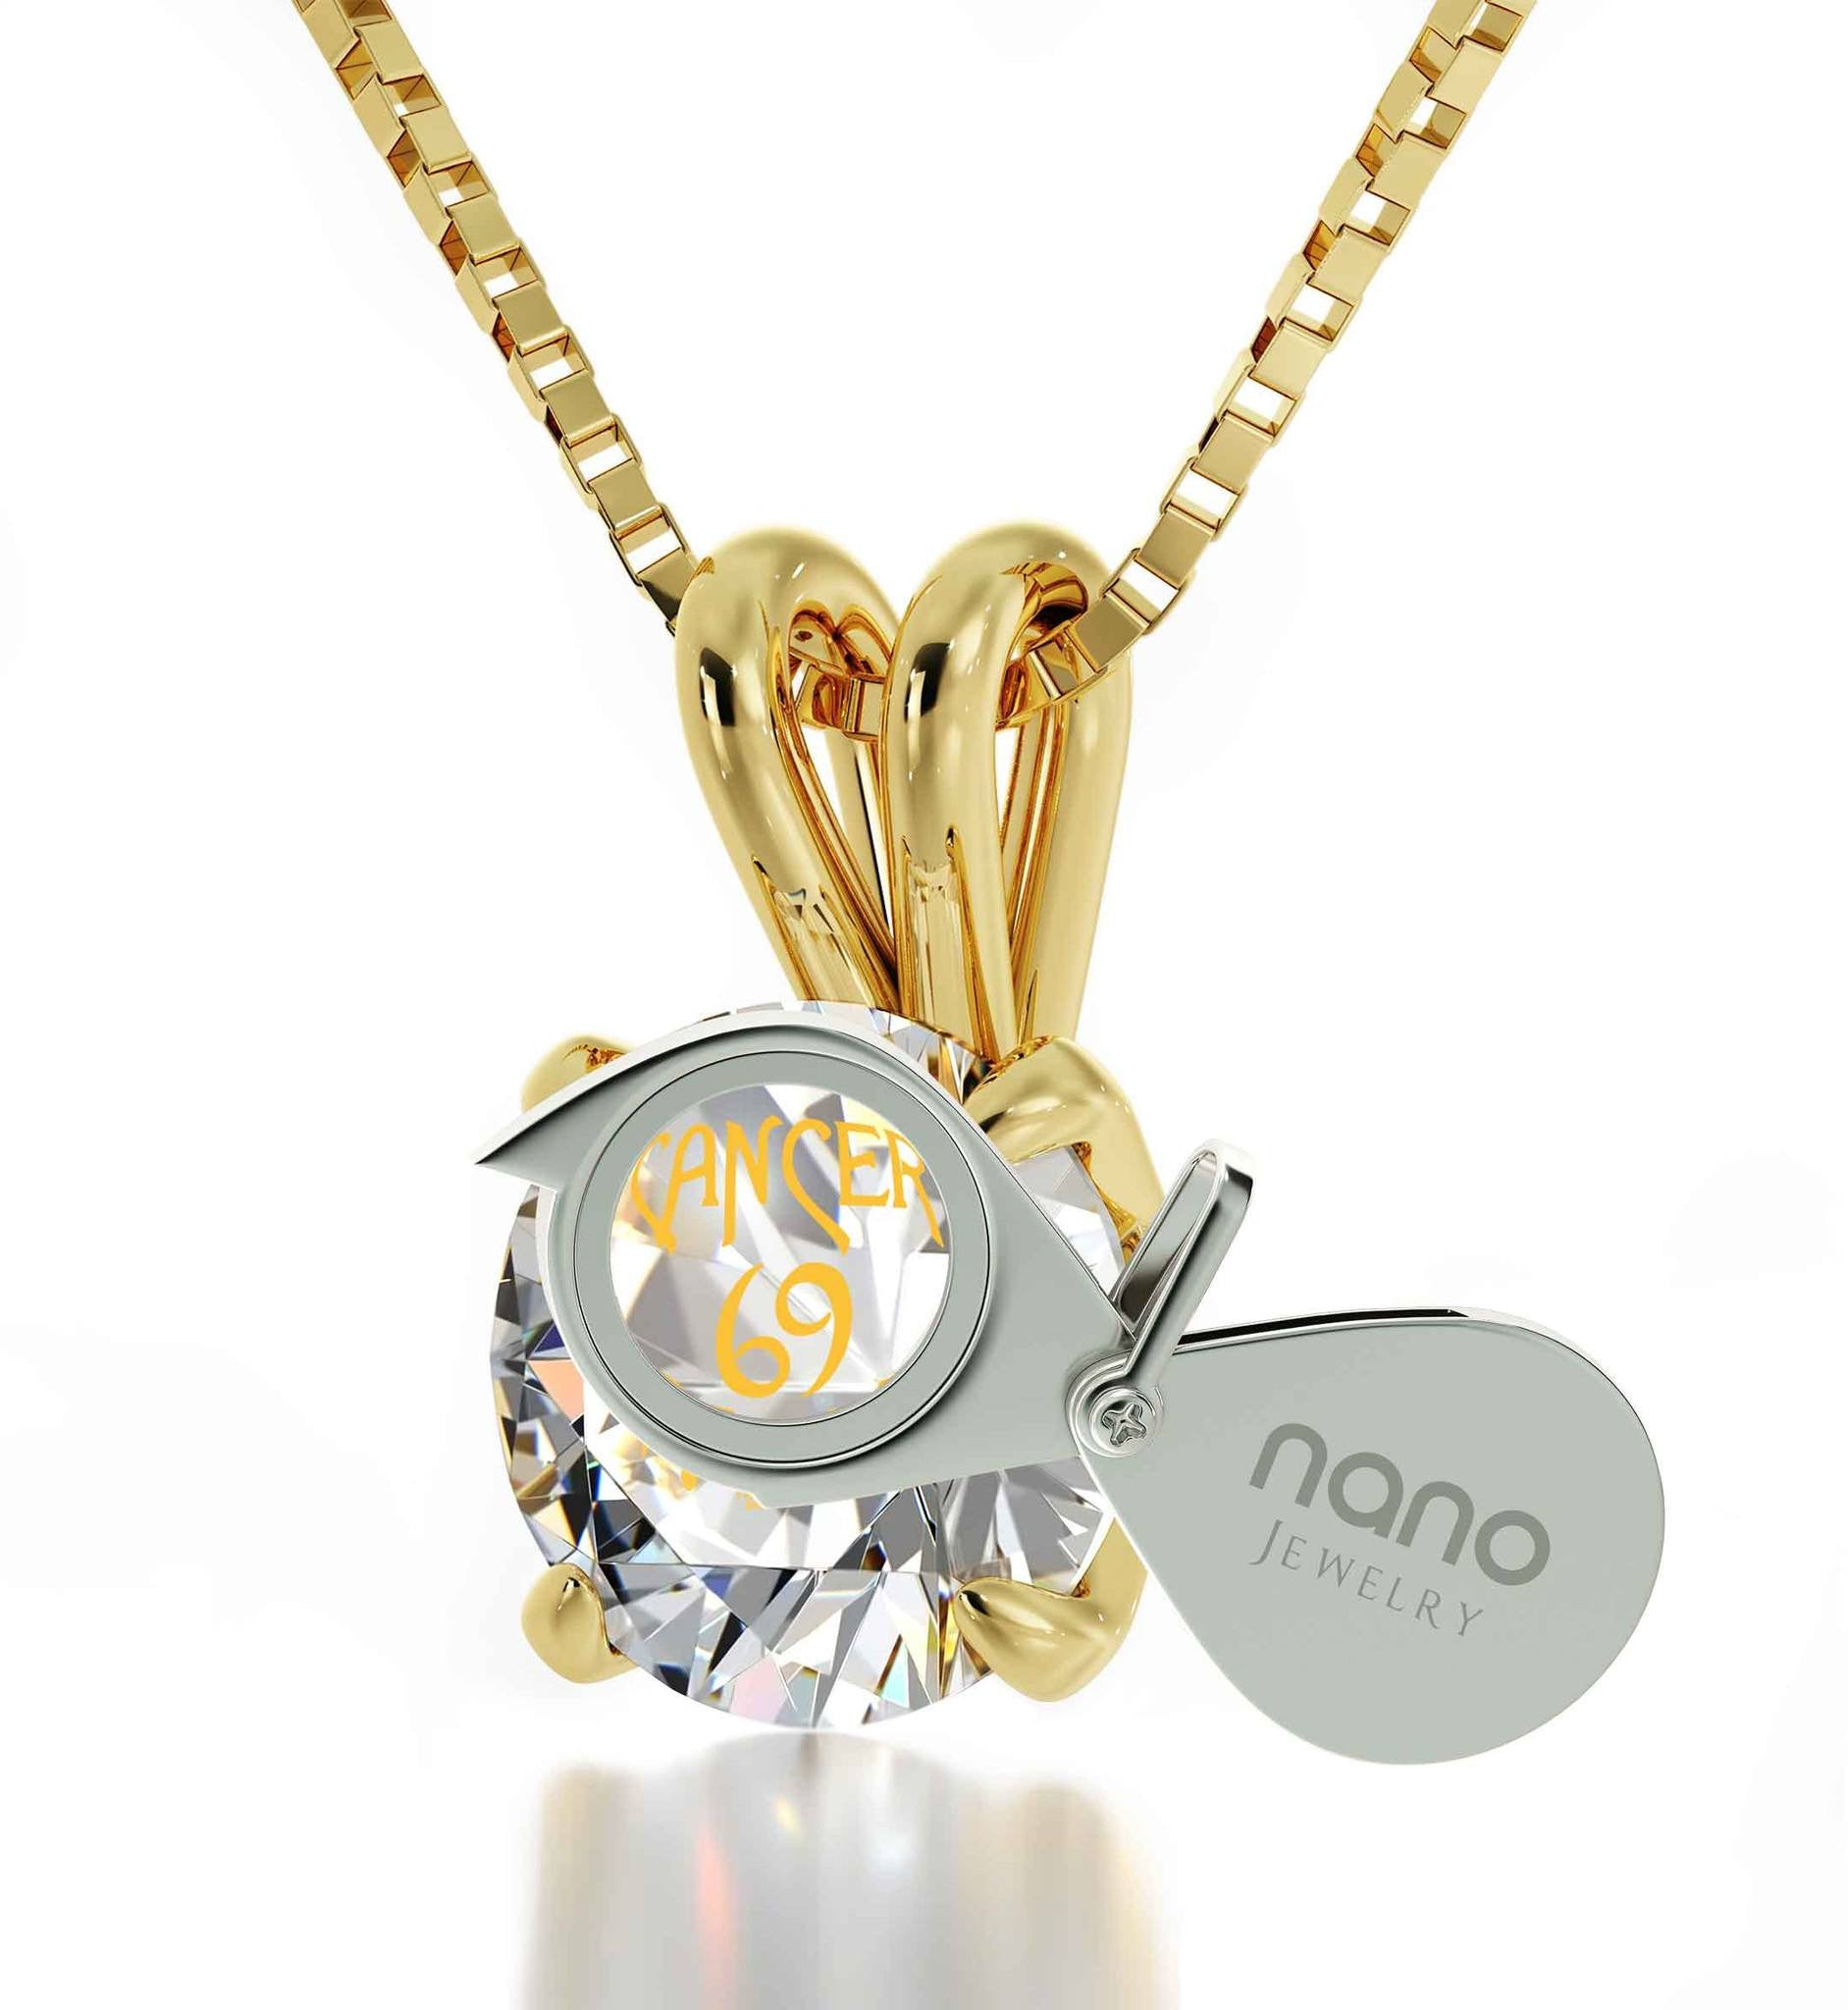 Birthday present for best friend cancer necklace by nano jewelry cancer engraved in 24k gold pendants for womens birthday gift for teenage girl aloadofball Choice Image